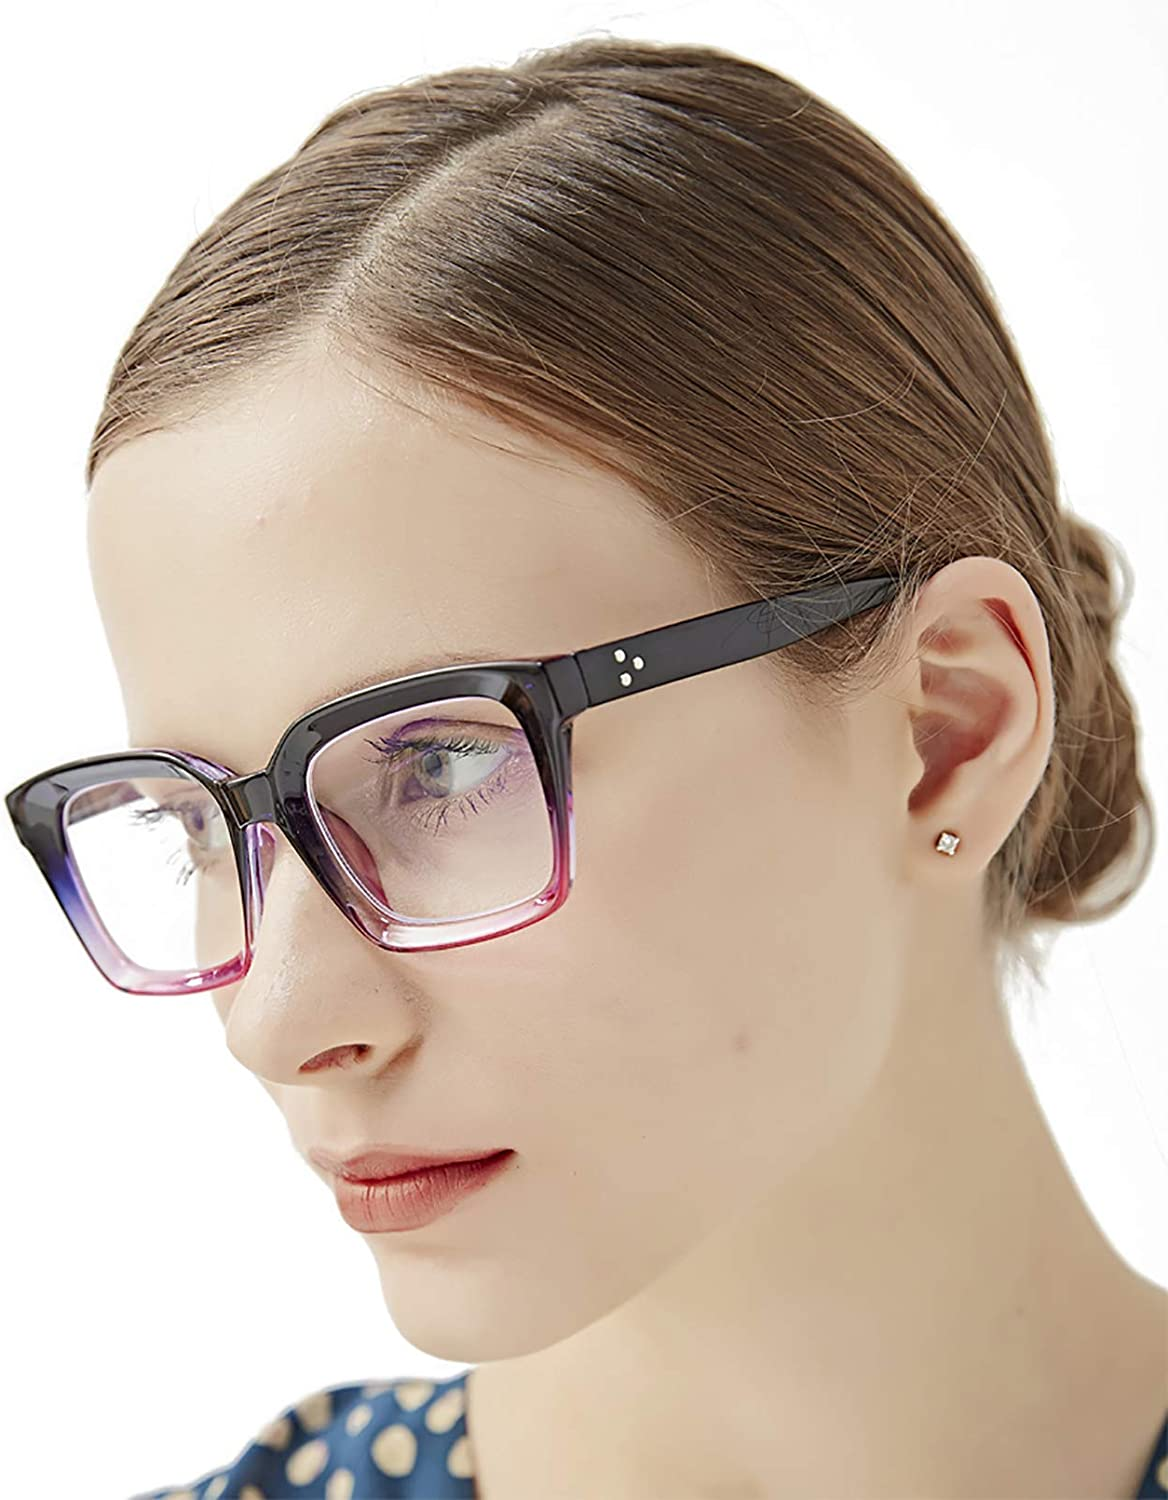 Reading Glasses Blue Light Blocking Max 49% OFF - Compu 2 +1.75 Readers Pack Super Special SALE held